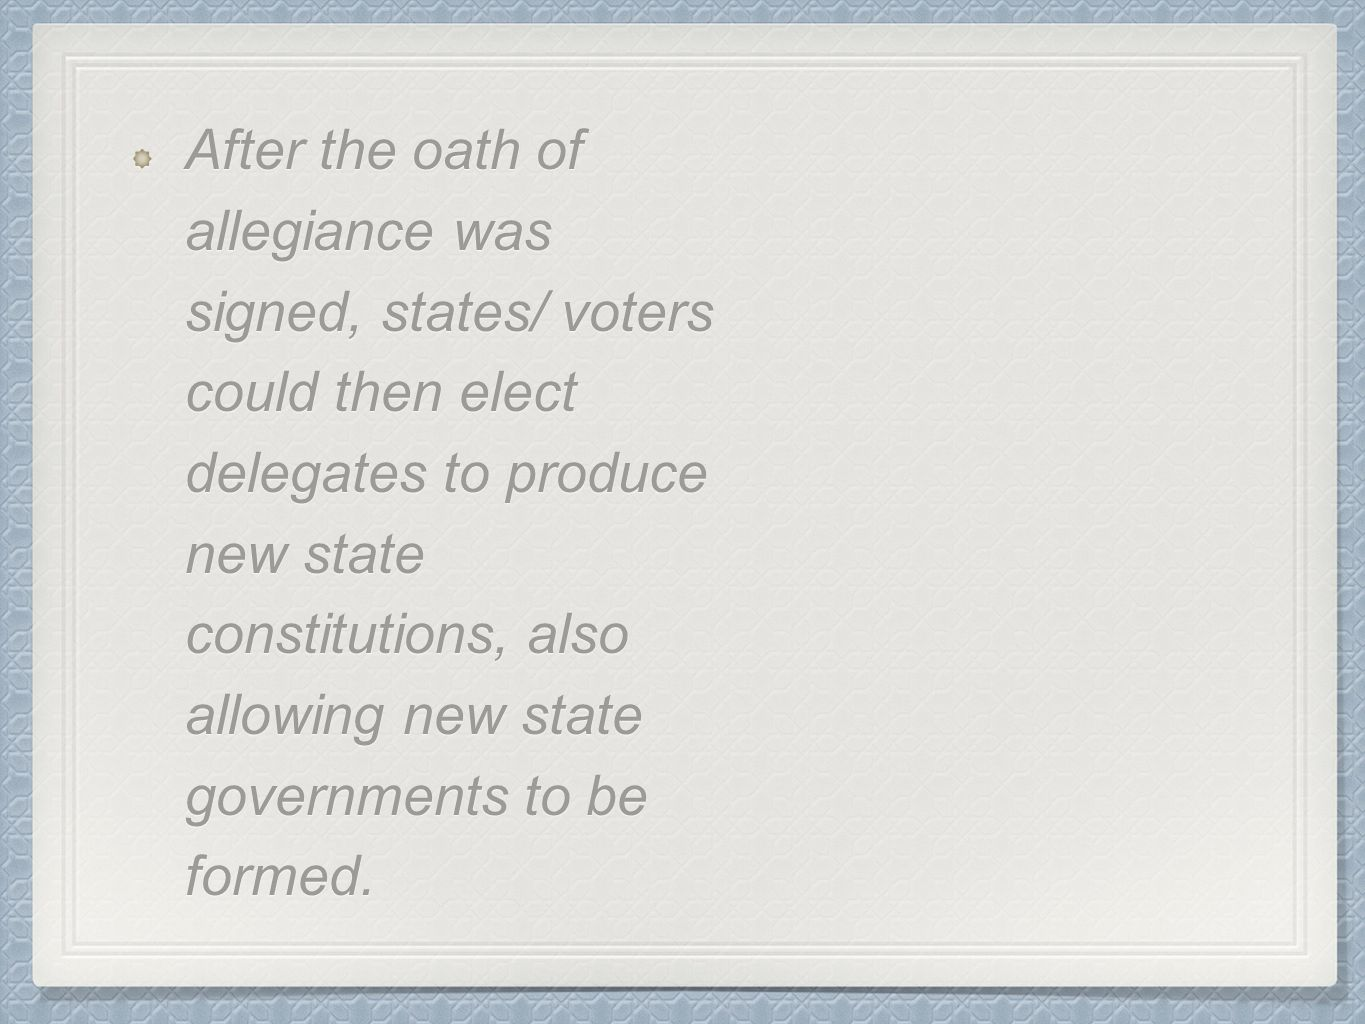 After the oath of allegiance was signed, states/ voters could then elect delegates to produce new state constitutions, also allowing new state governments to be formed.